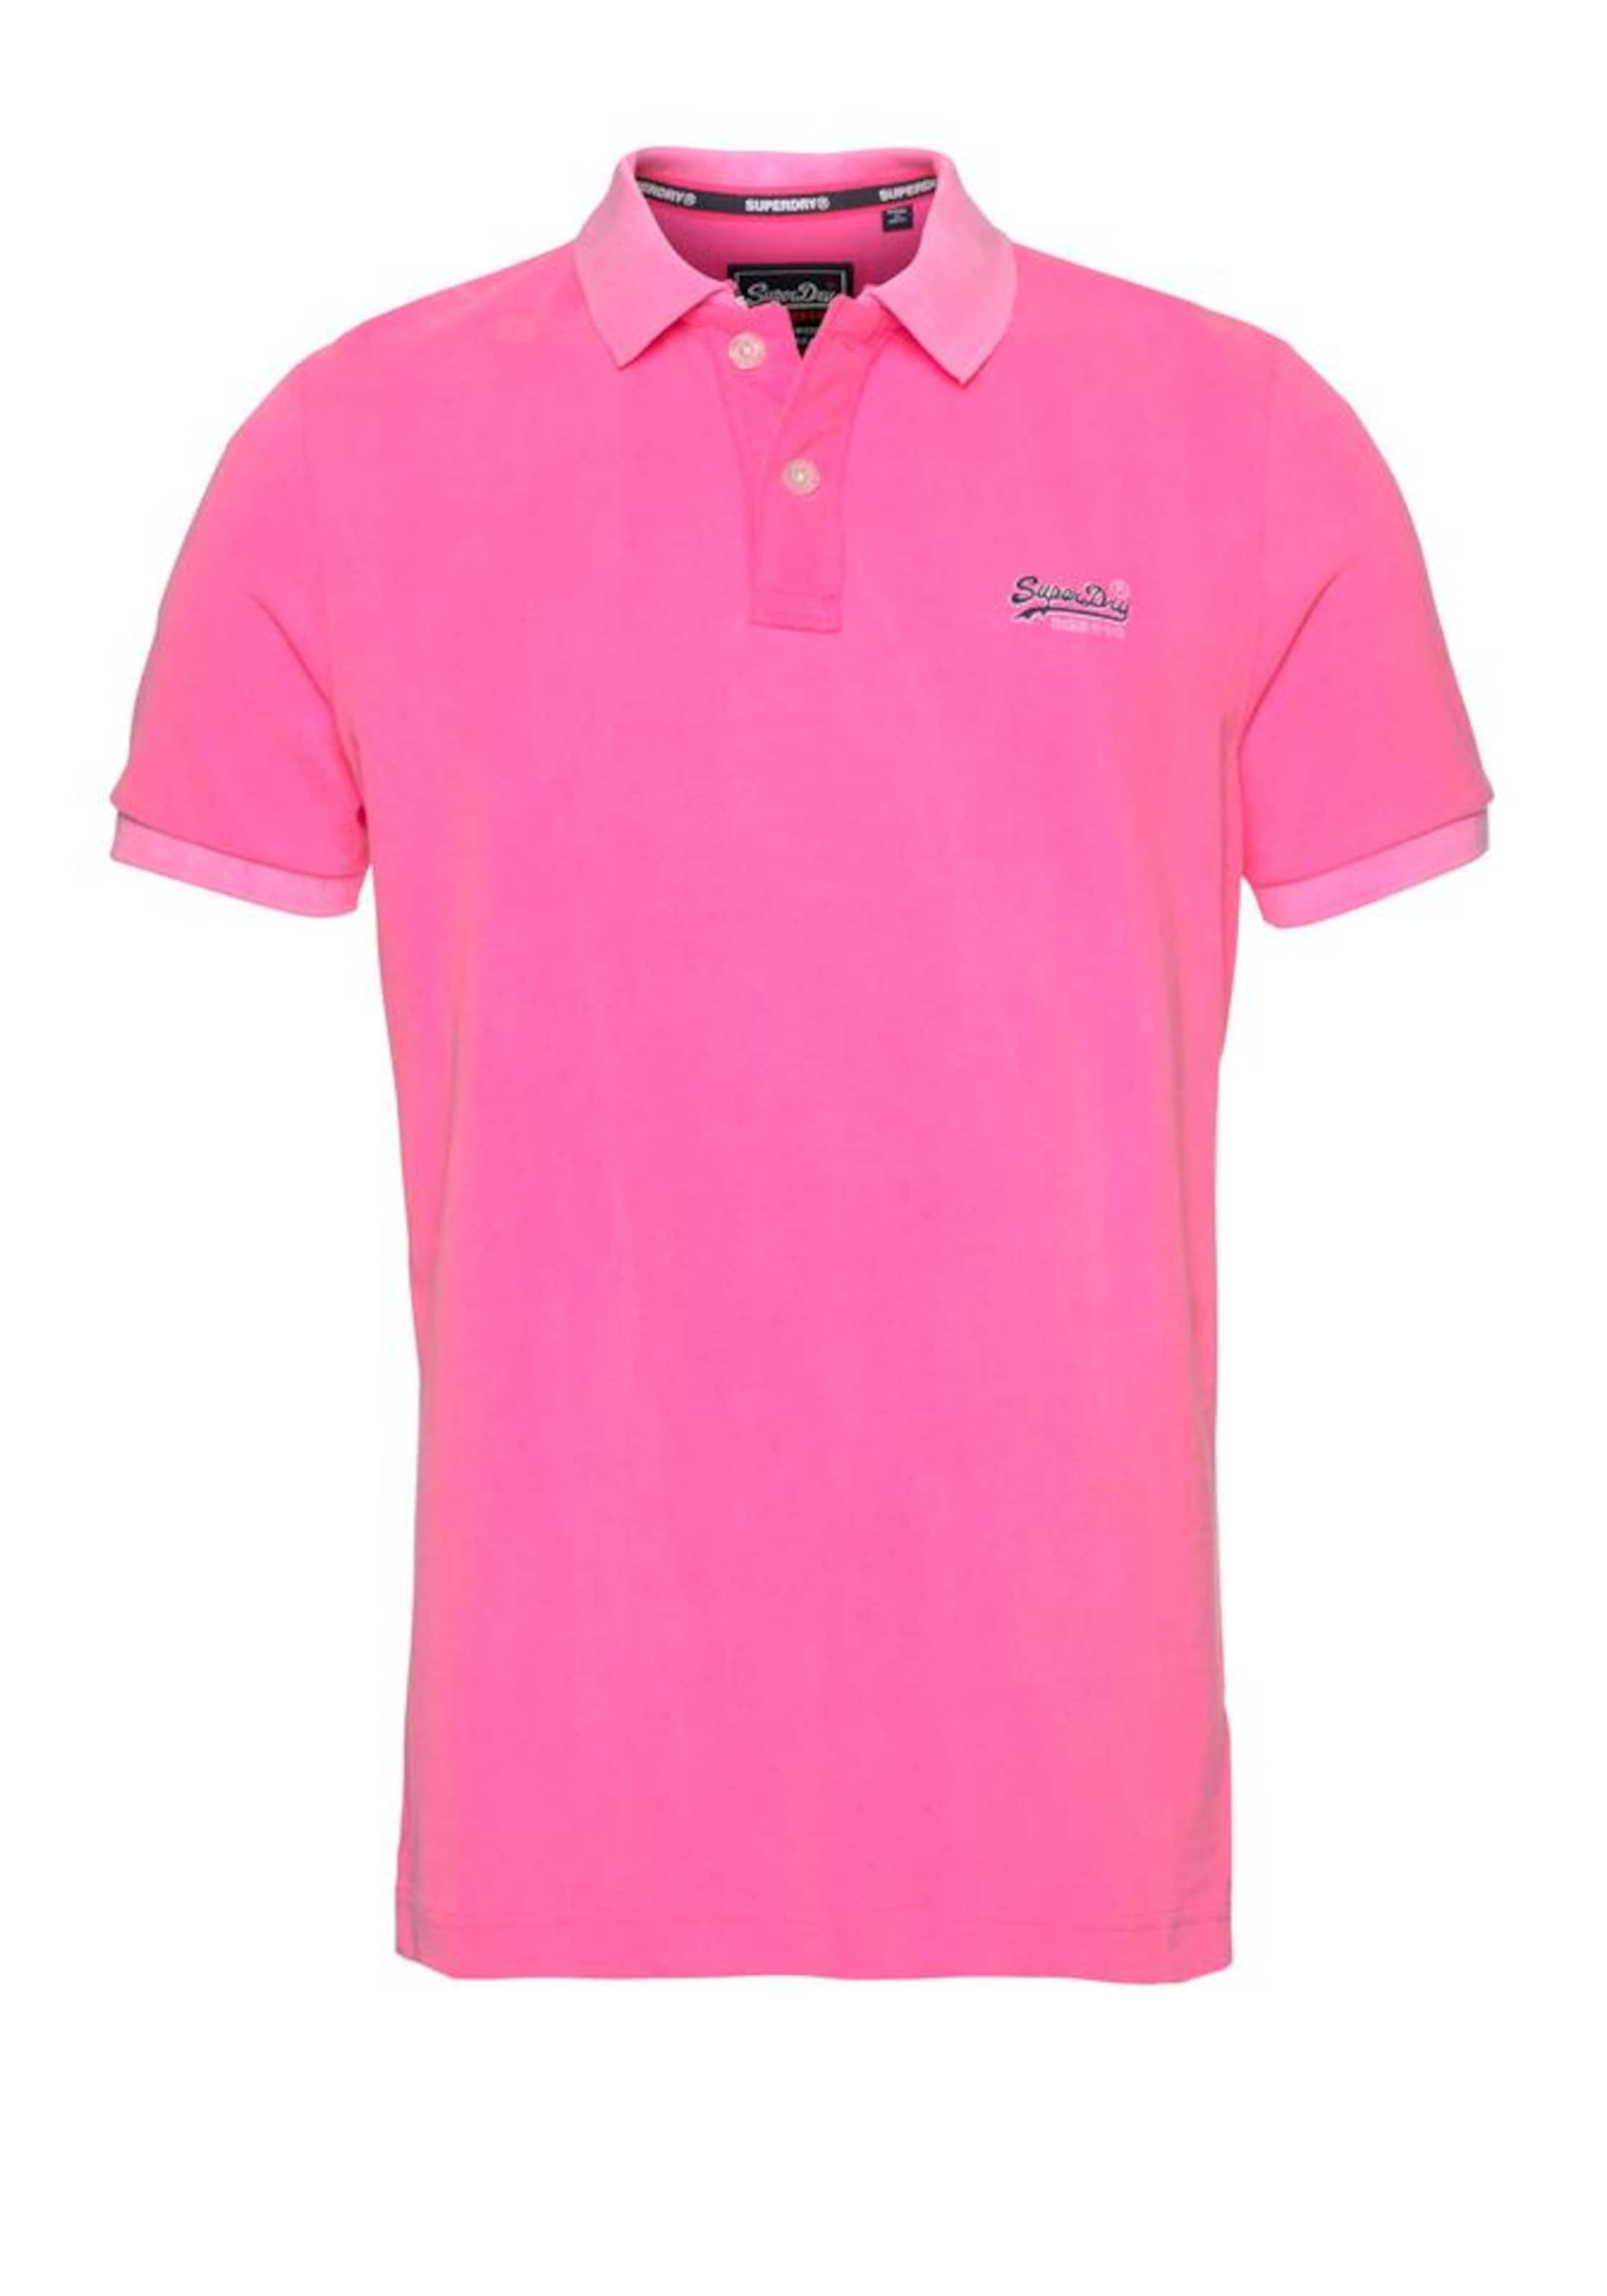 Superdry Shirt Shirt PinkSchwarz Superdry Superdry PinkSchwarz In Superdry In Shirt In PinkSchwarz In Shirt jLAR534